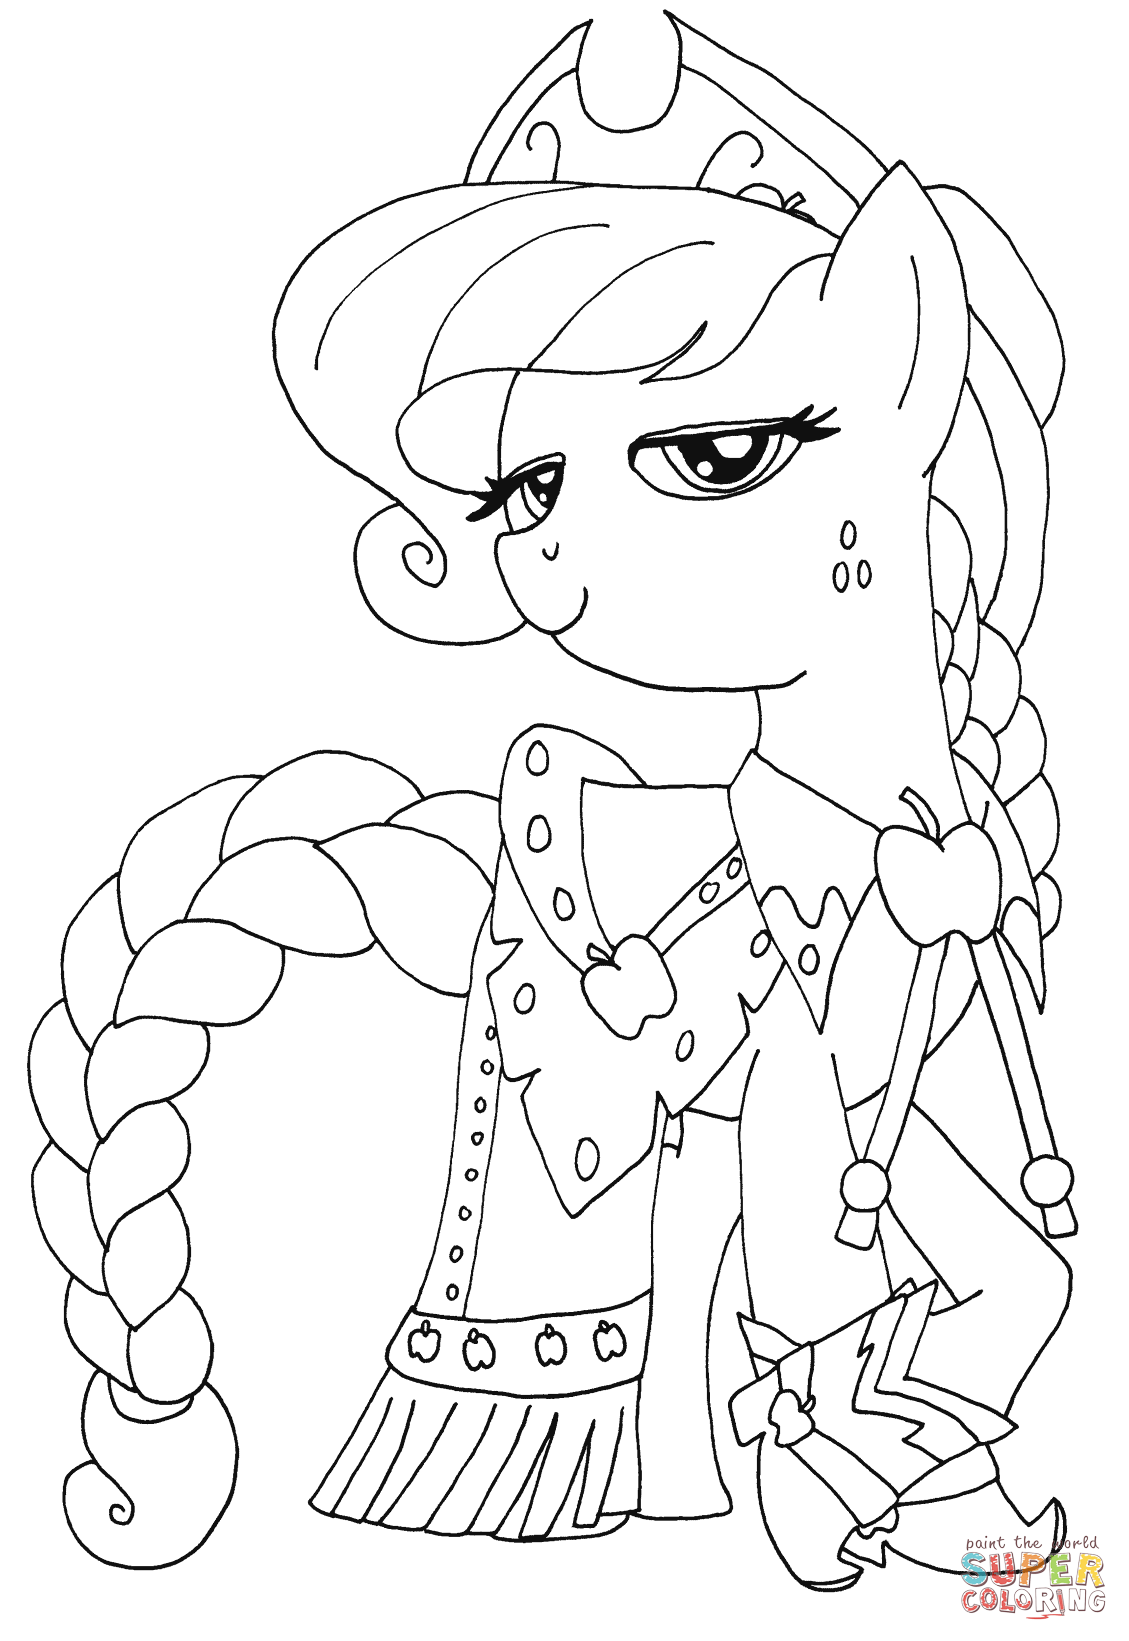 Princess Applejack from My Little Pony Coloring Page - My Little ...